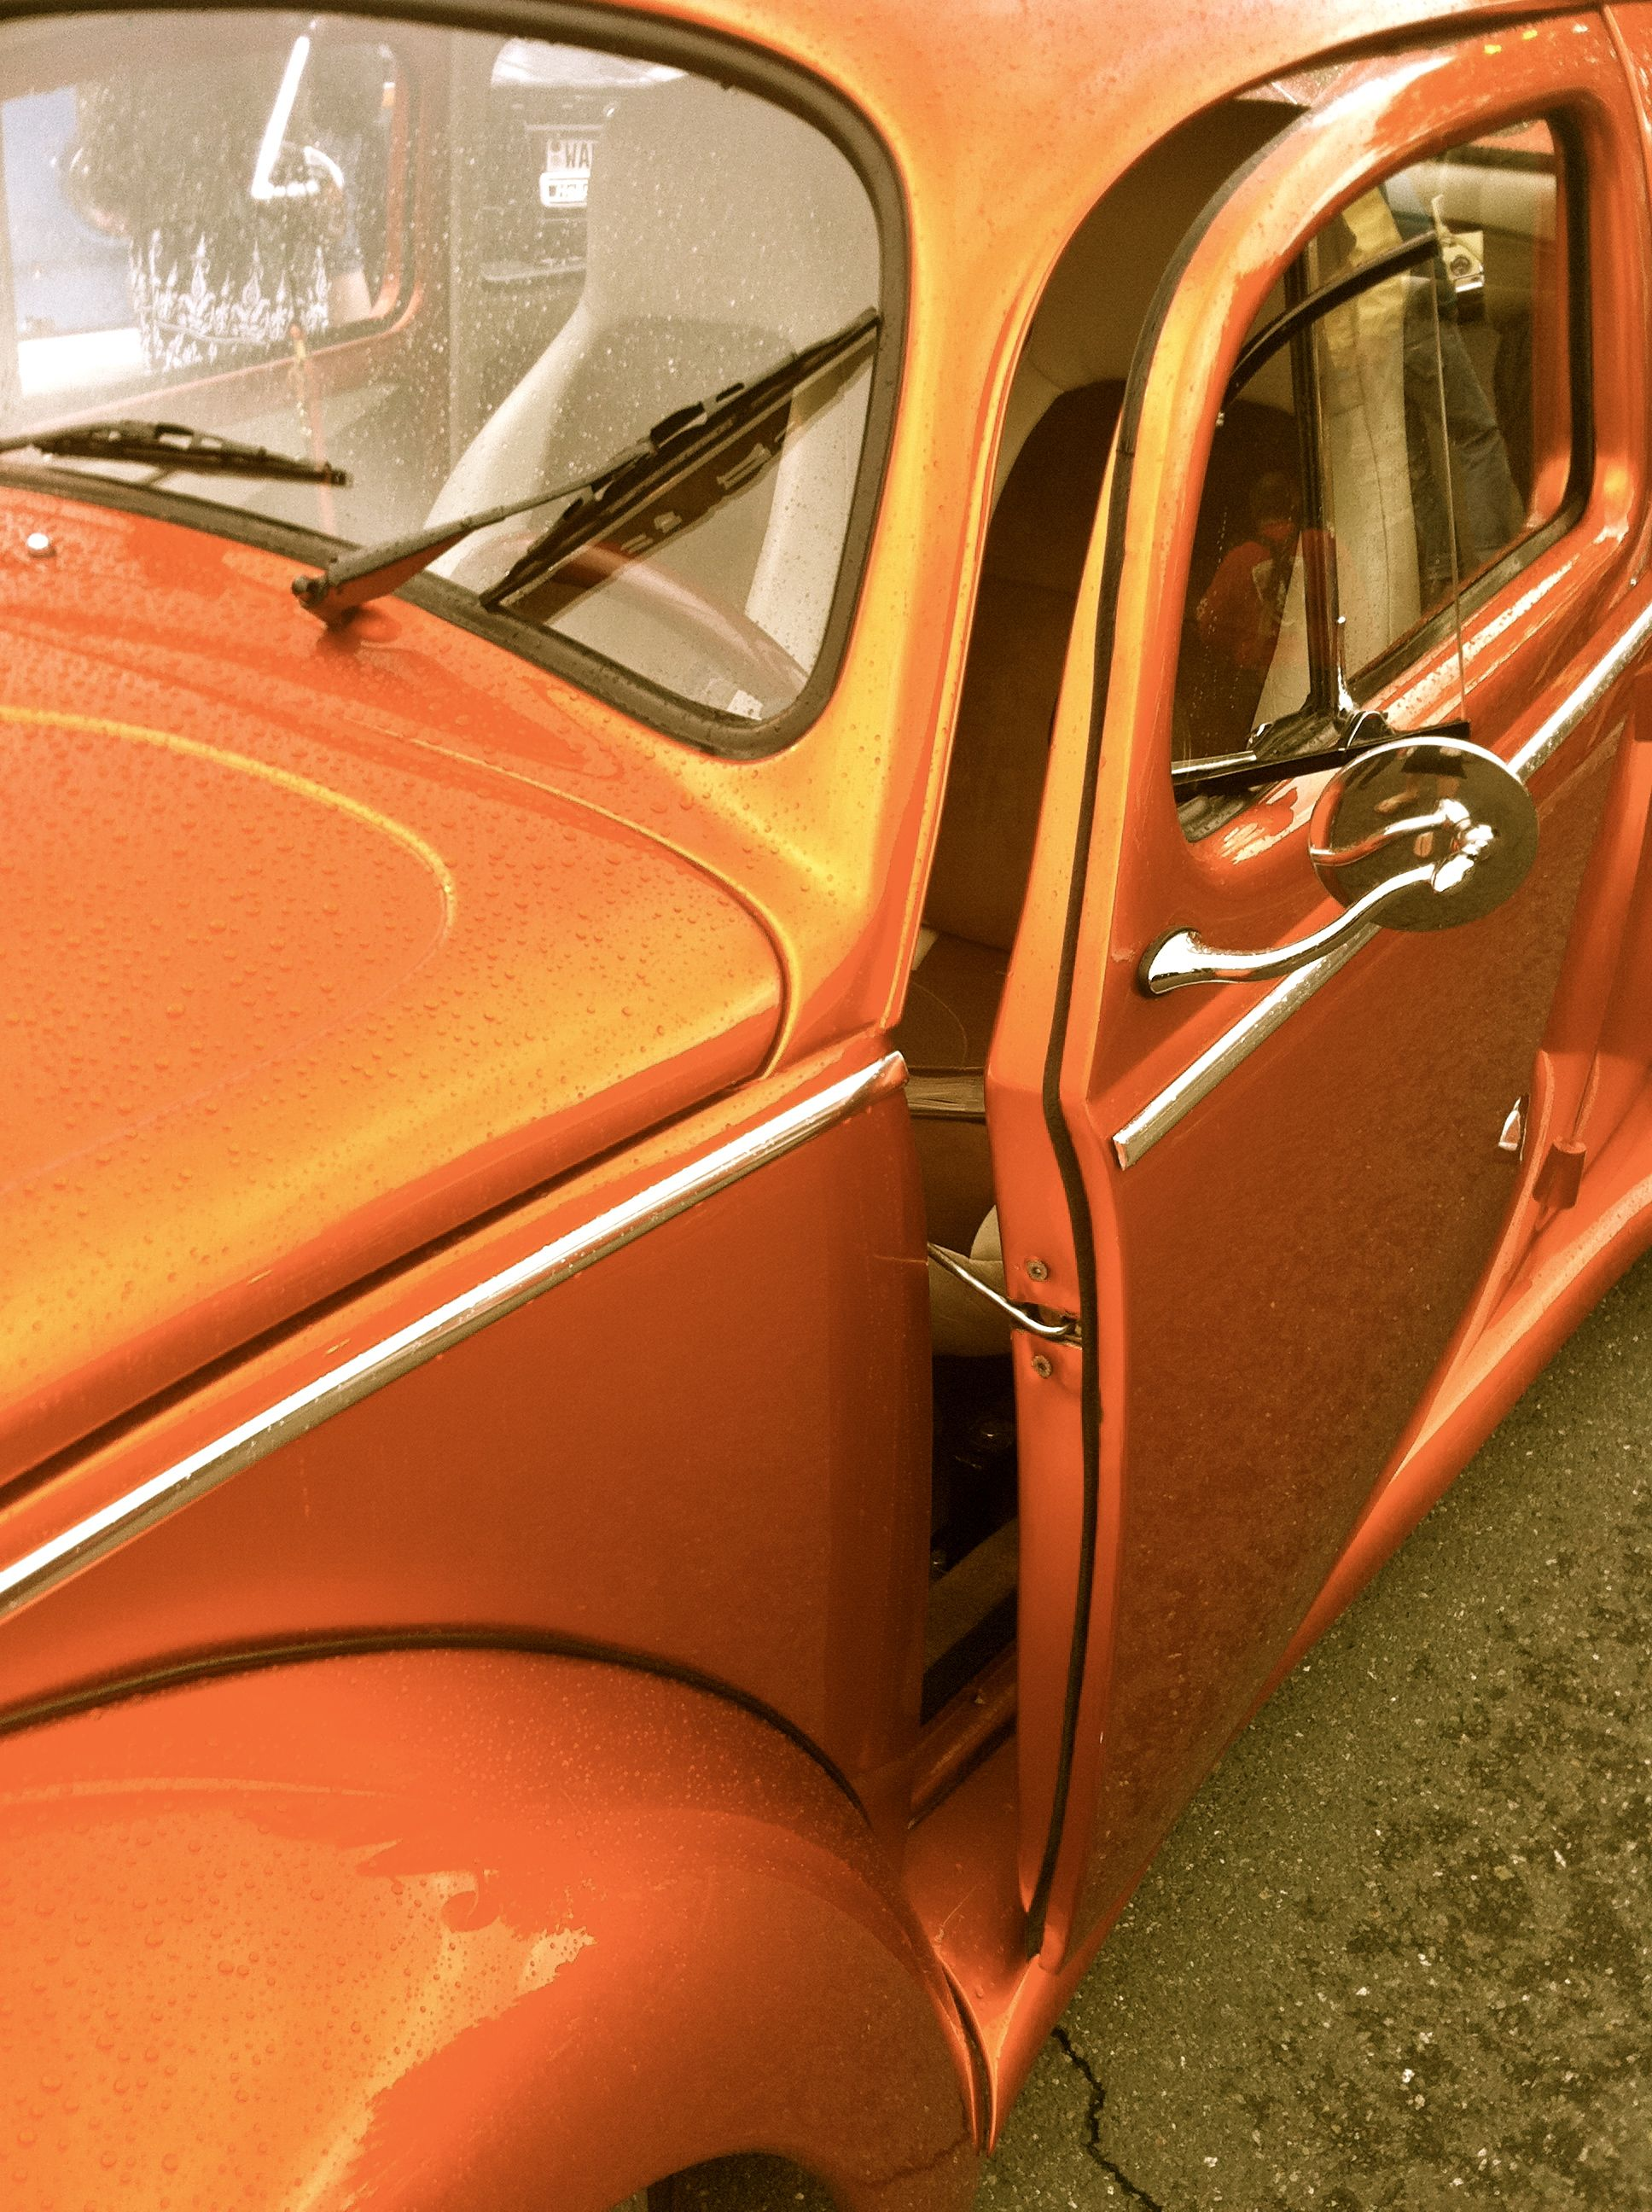 Vintage Vw Bug With Door